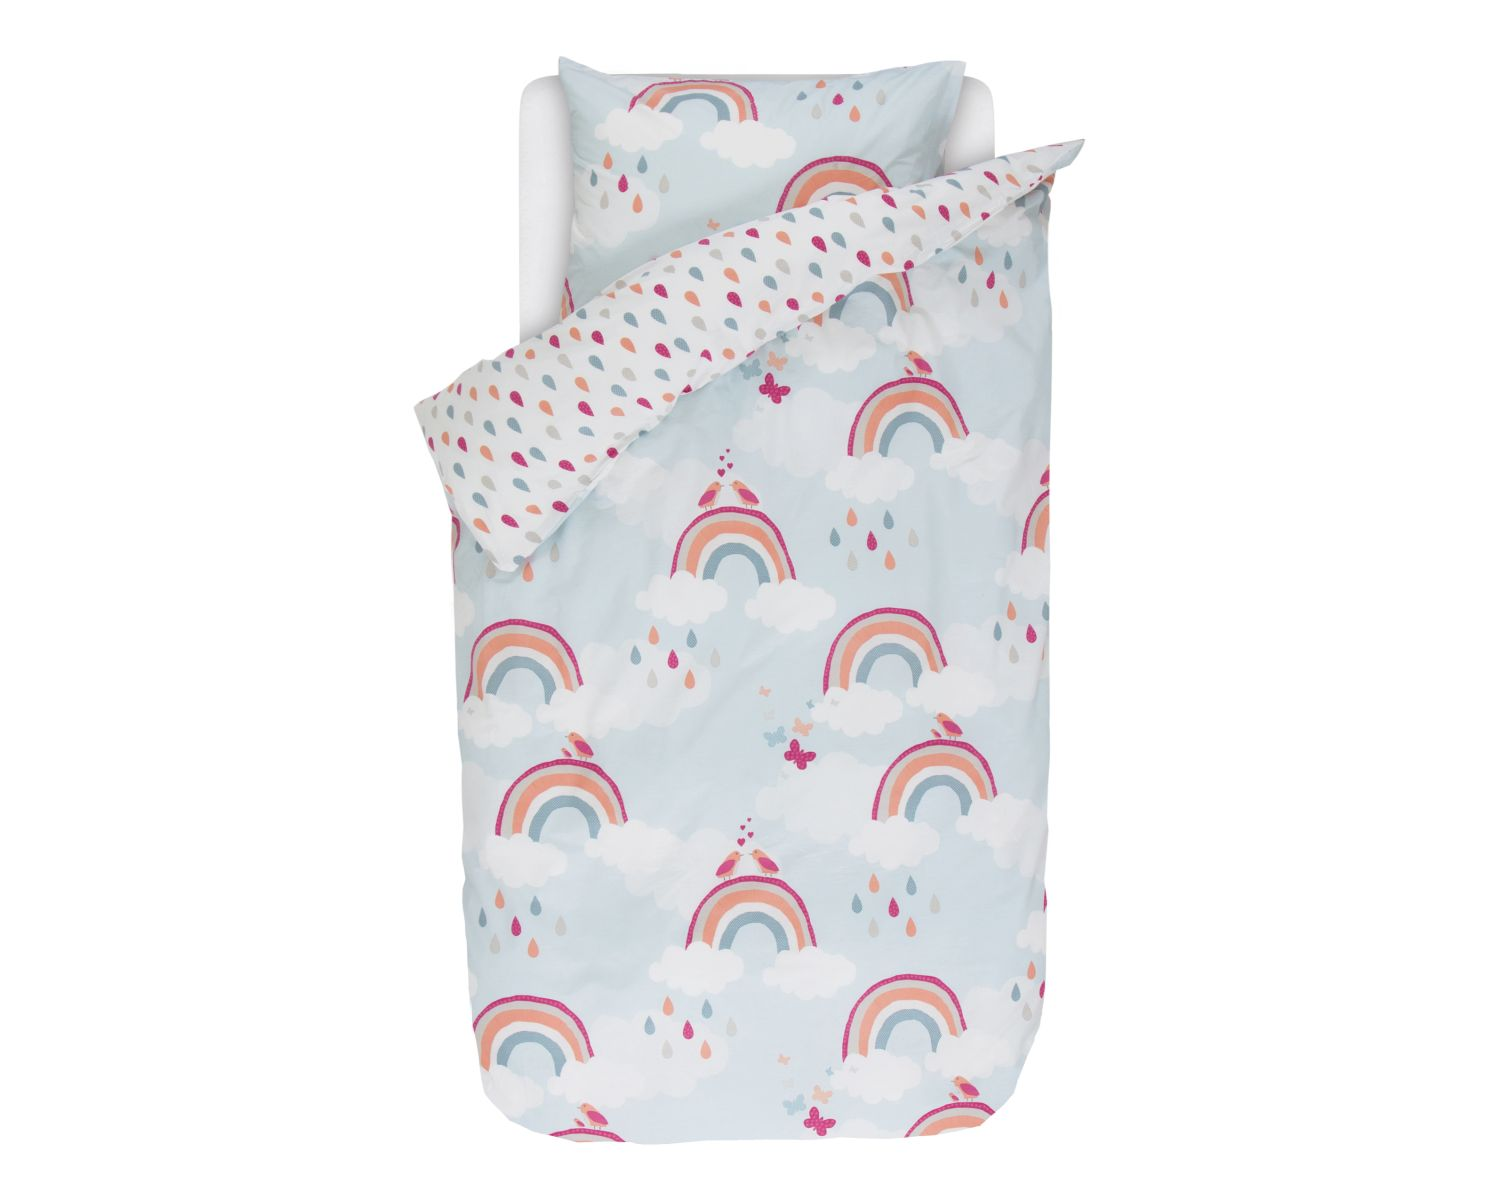 Bettwäsche Esprit Esprit Renforce Kinder Bettwäsche Rainbows Multi Slewo